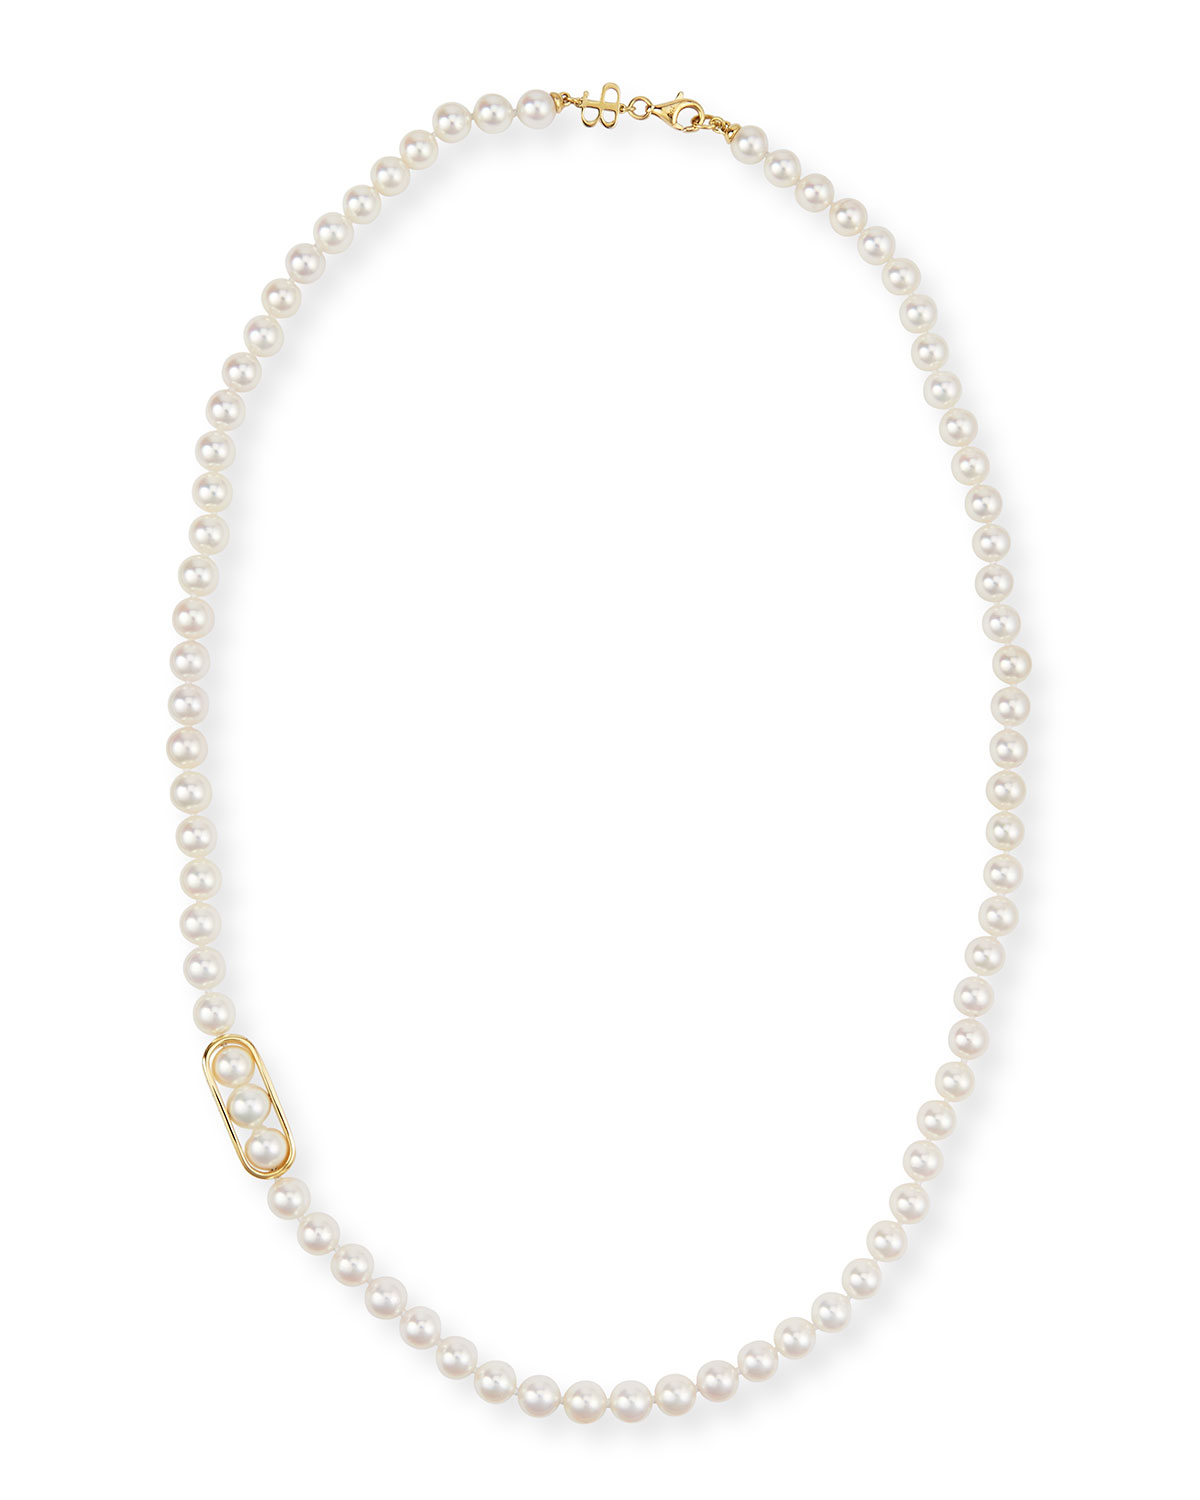 Belpearl 18K Gold Akoya Pearl Necklace, 24""